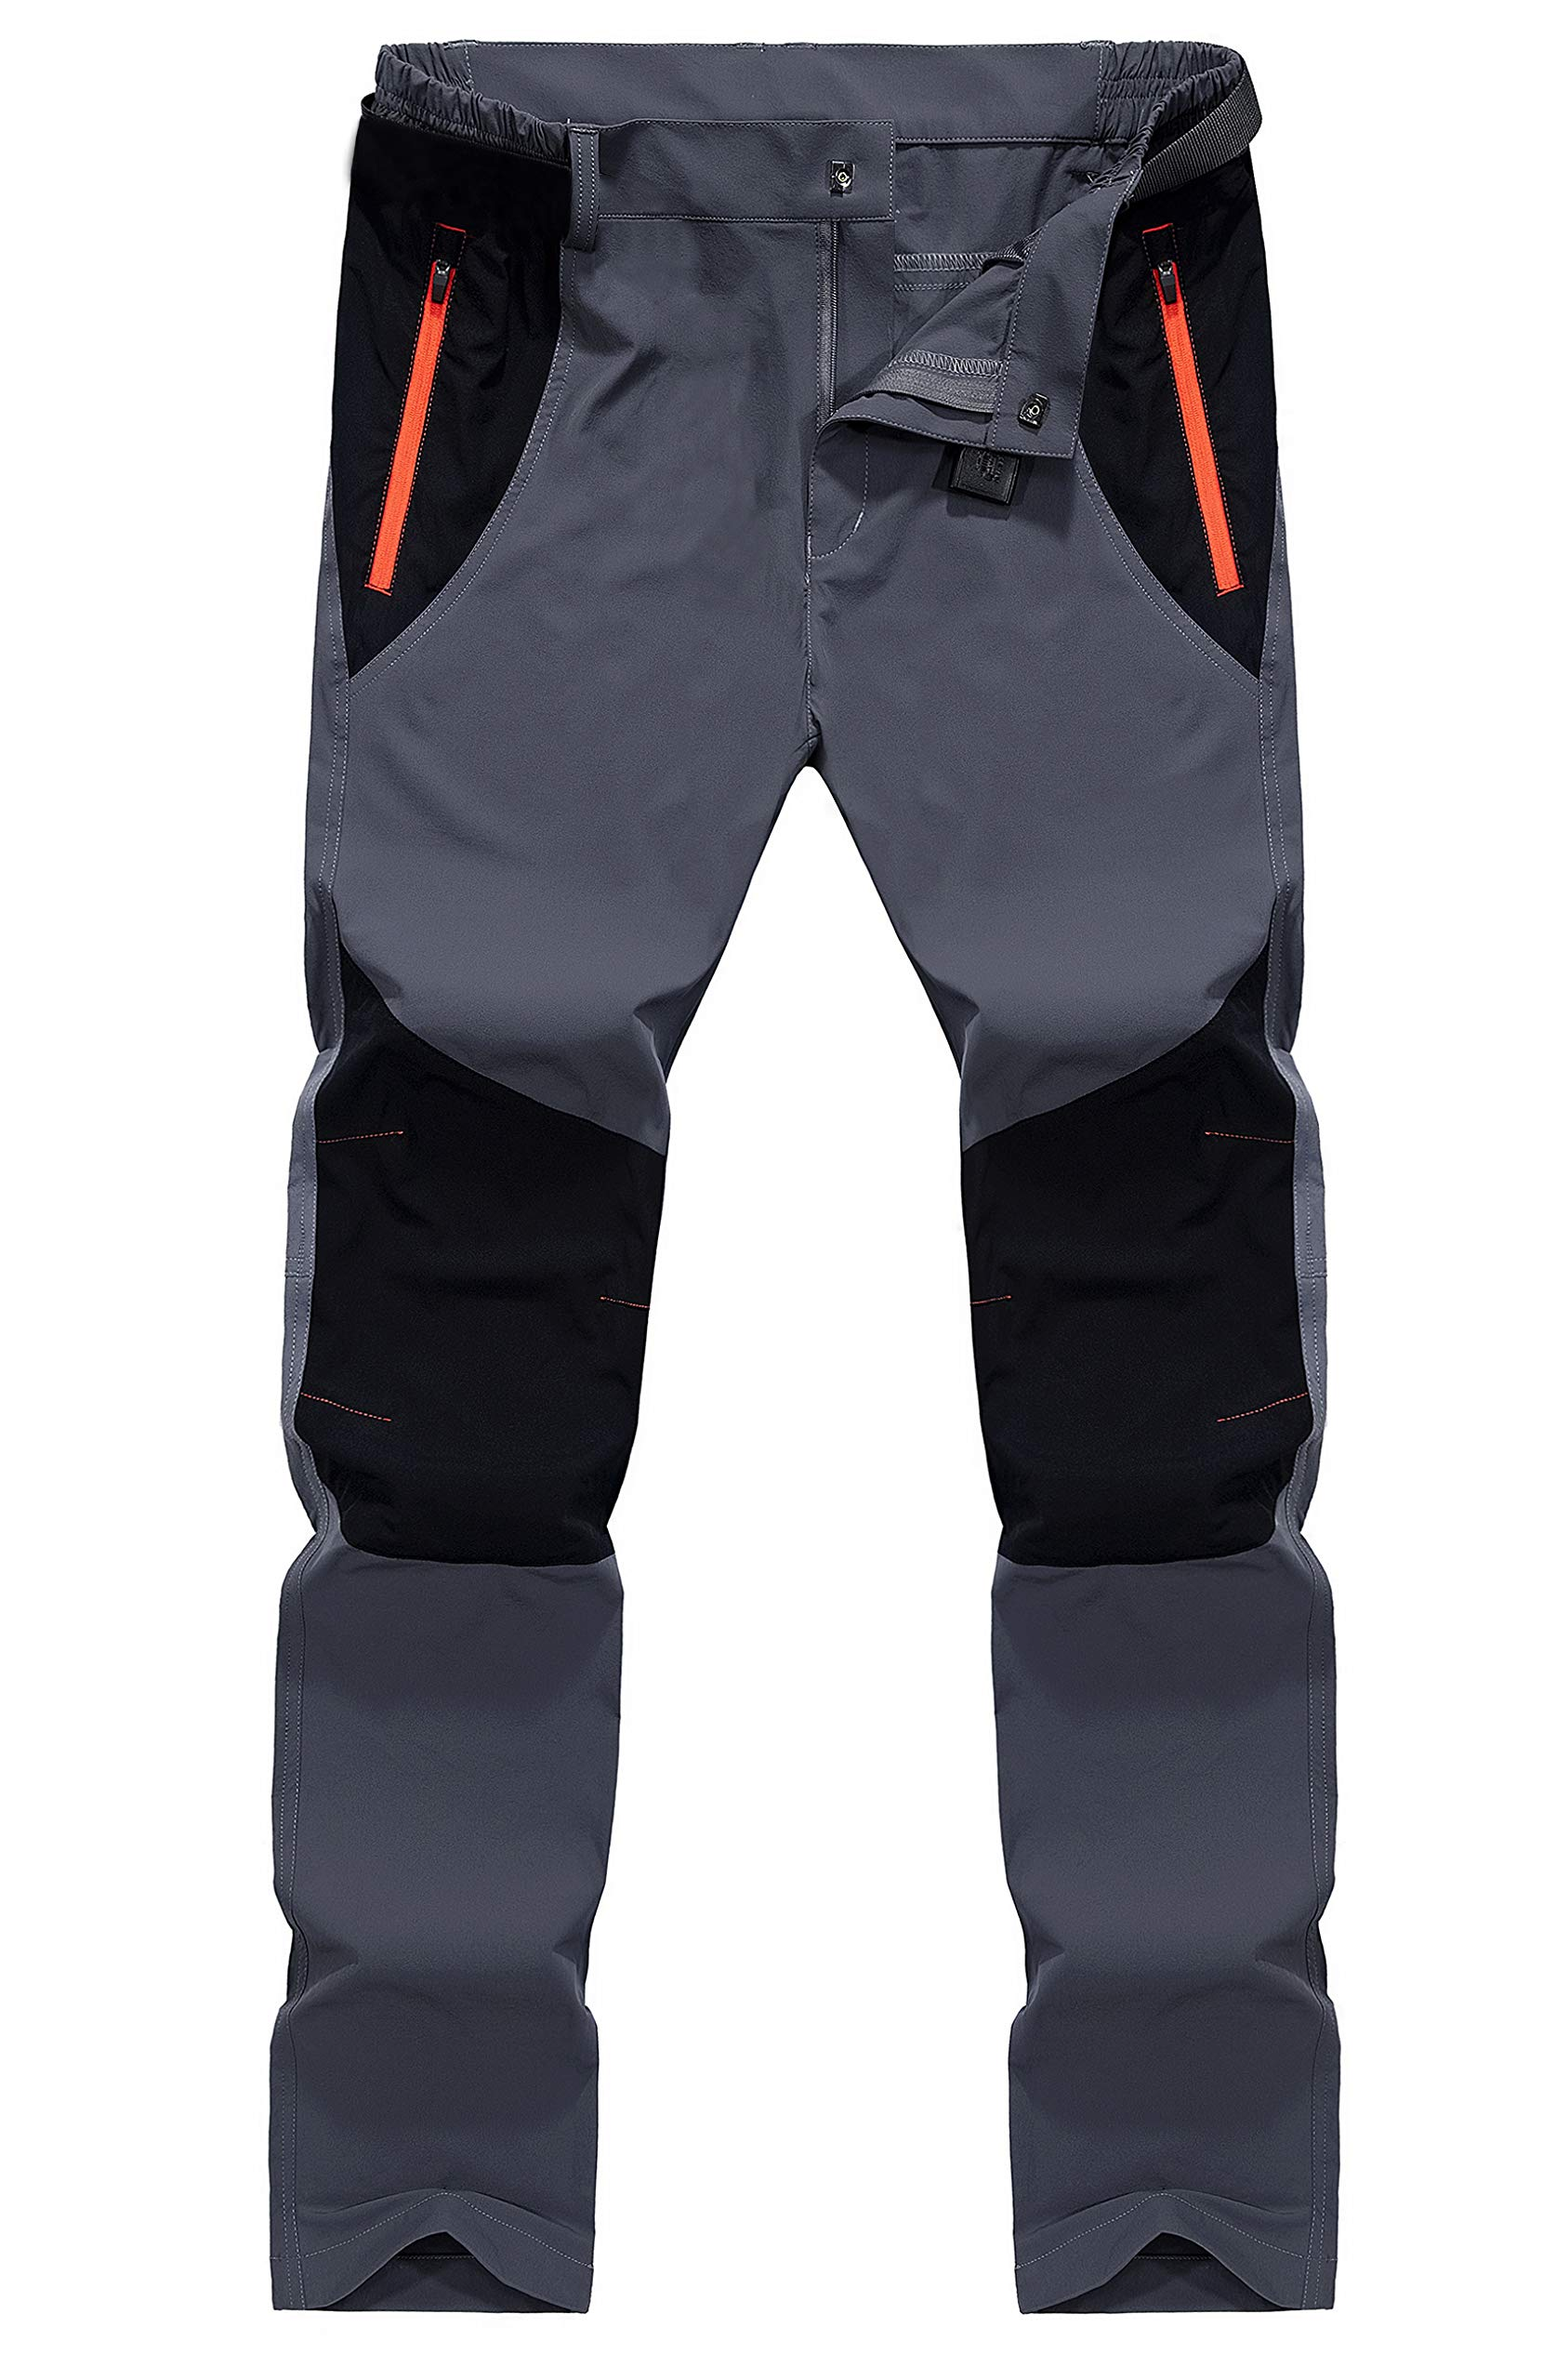 TACVASEN Mens Lightweight Stretch Quick Dry Trousers Outdoor hiking Pants with Zipper Pockets